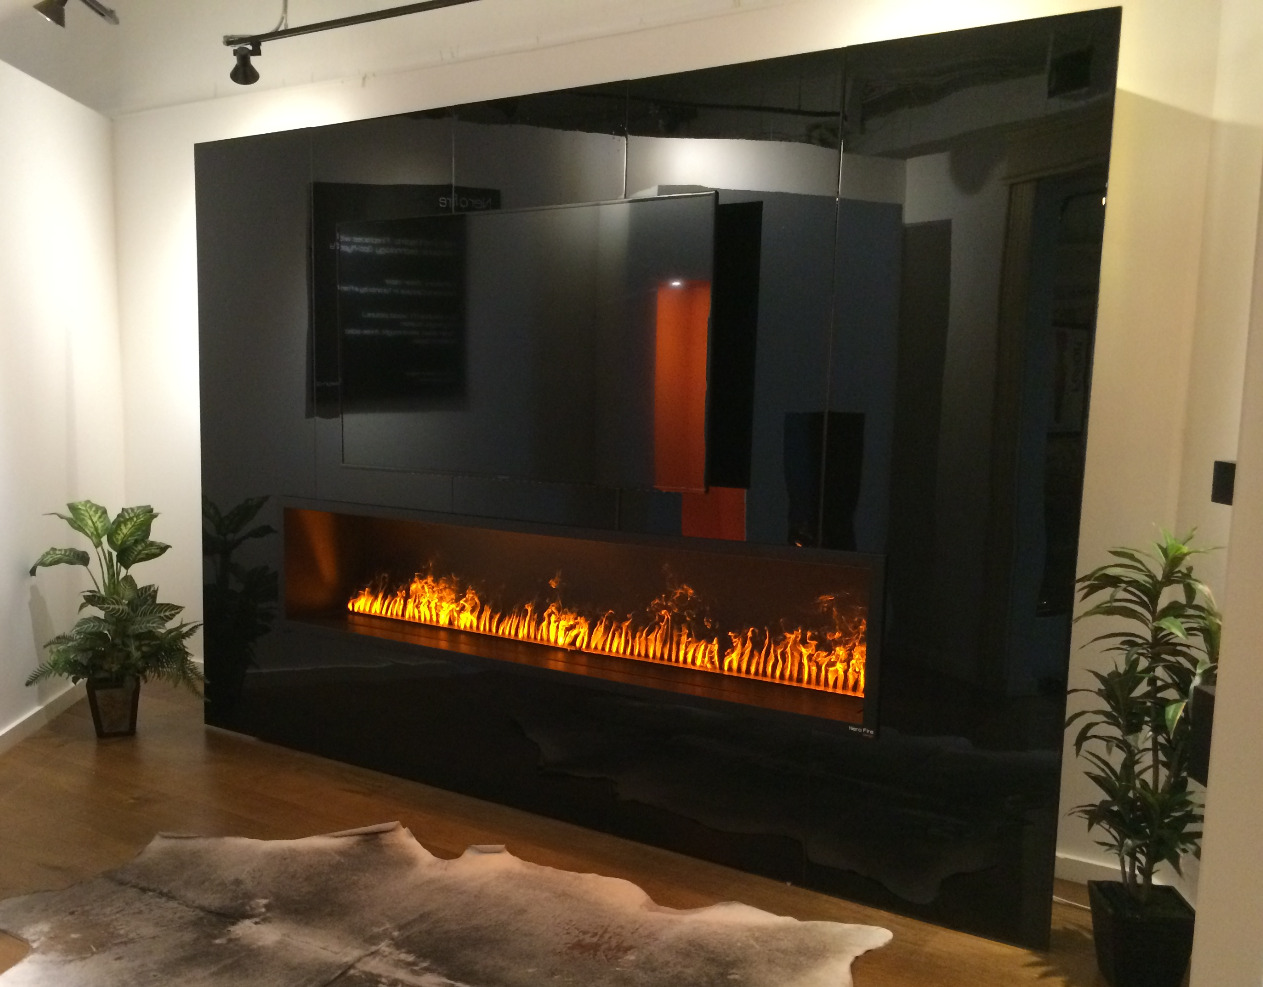 Nero Fire Design   High-End Electric Fireplace Toronto   Modern Electric  Fireplace Toronto - Nero Fire Design High-End Electric Fireplace Toronto Modern